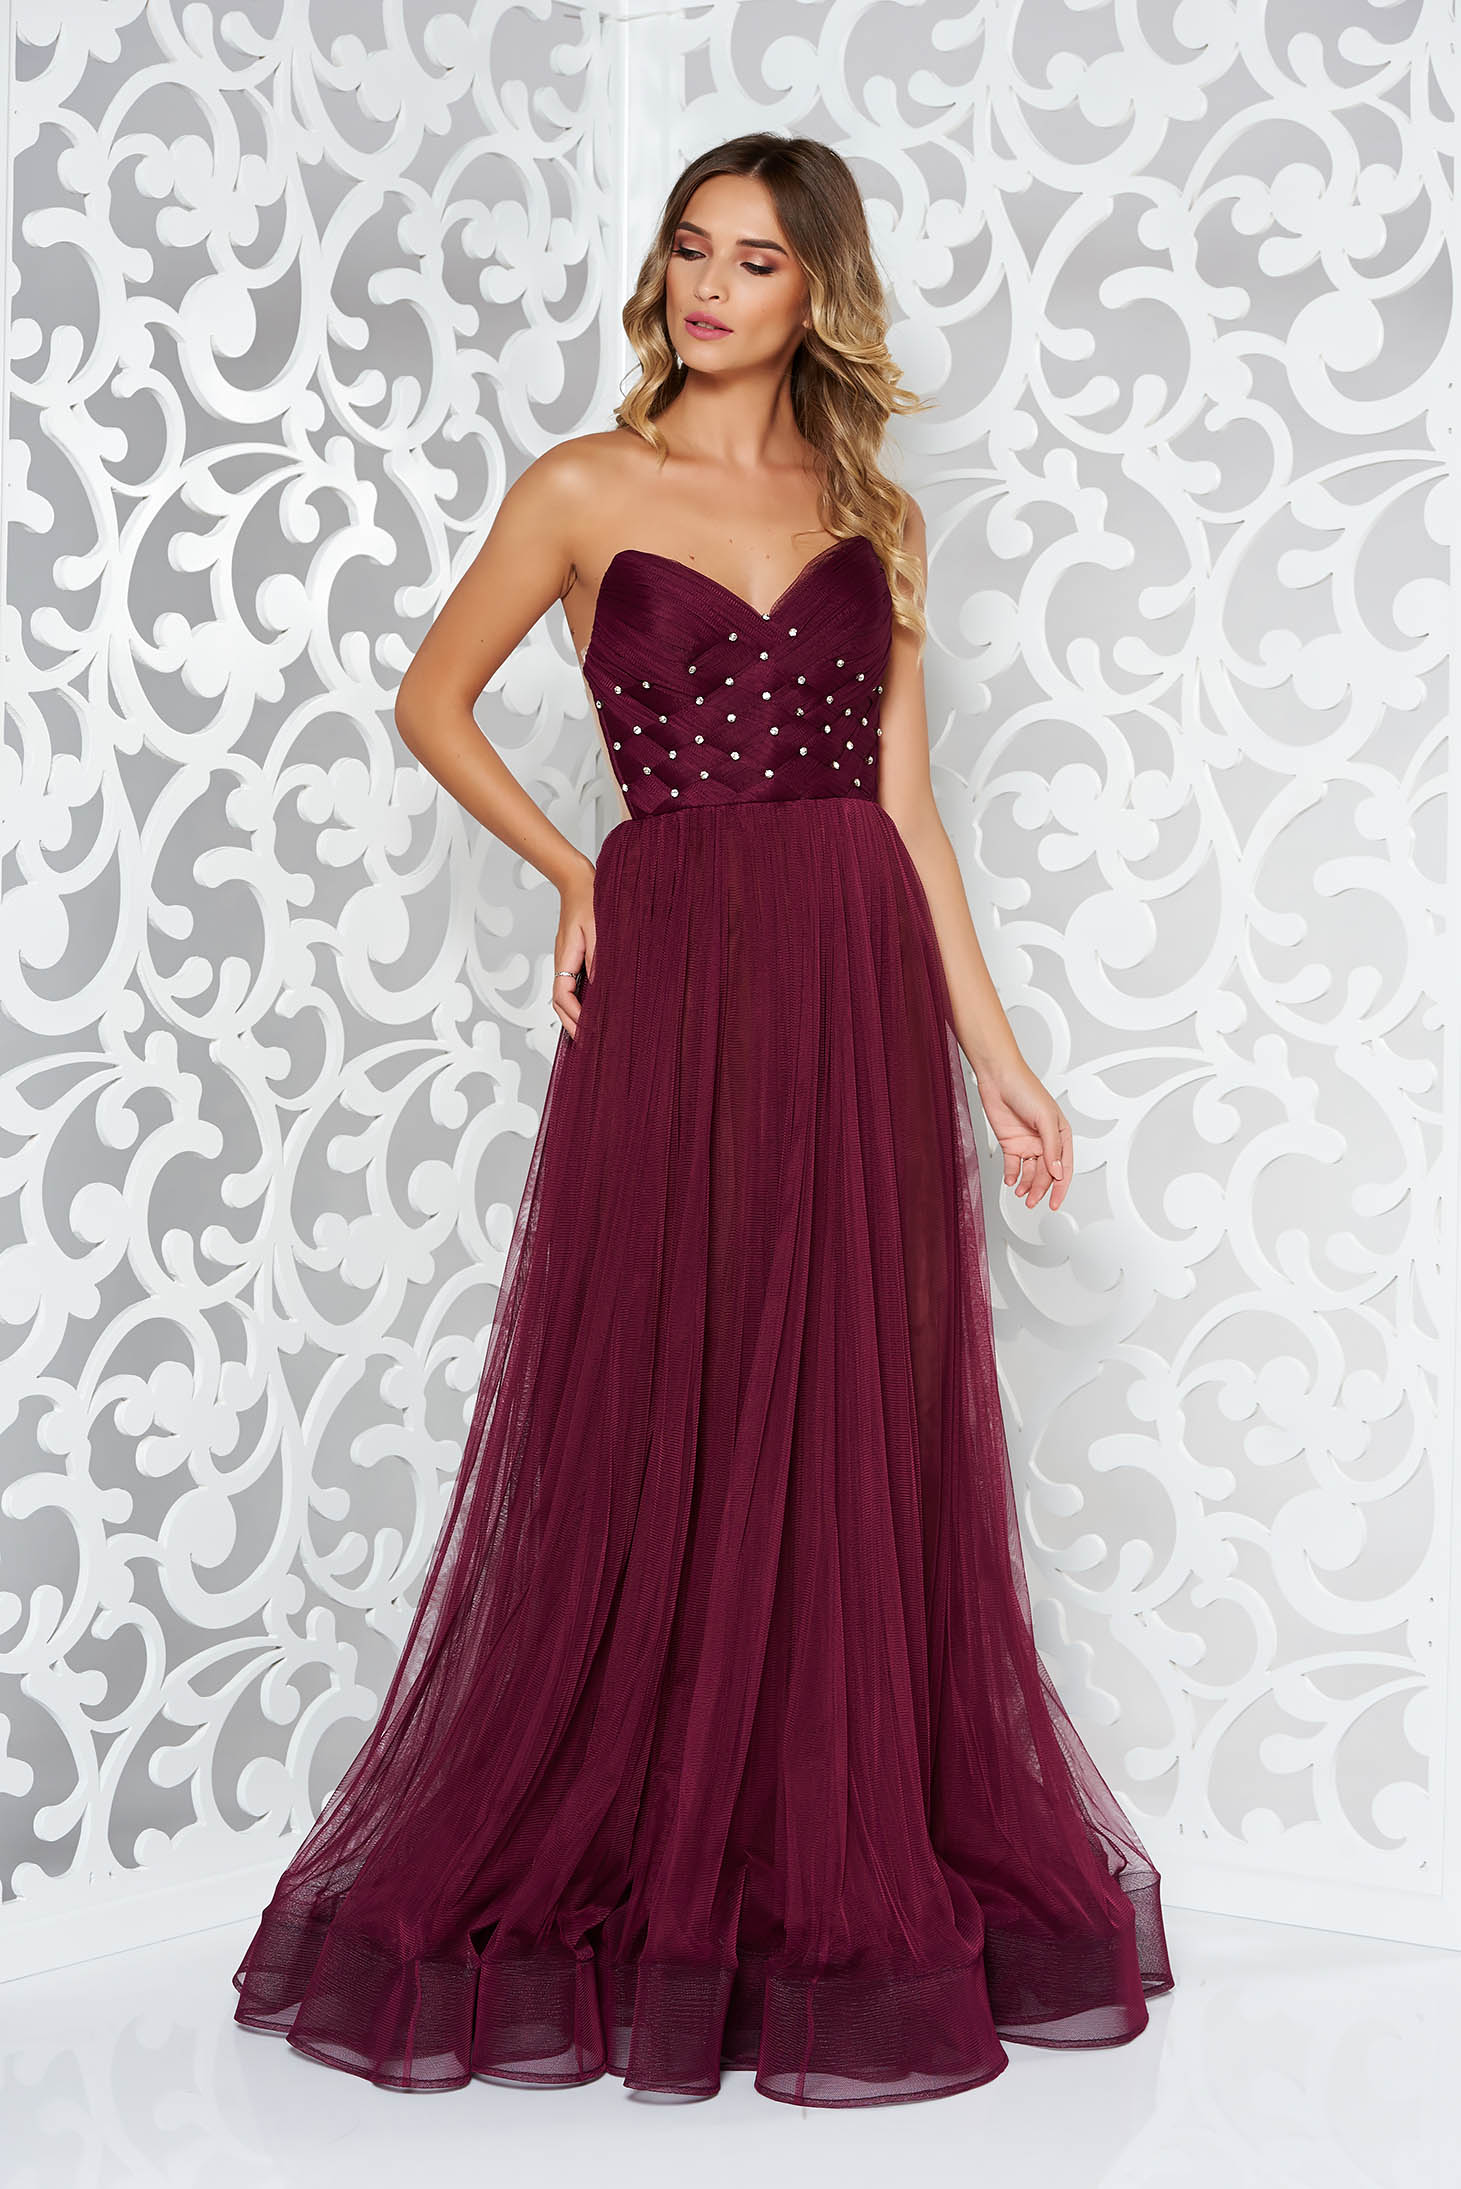 ana-radu-burgundy-dress-with-push-up-bra-occasiona-S028704-4-383139.jpg 65daa1d96